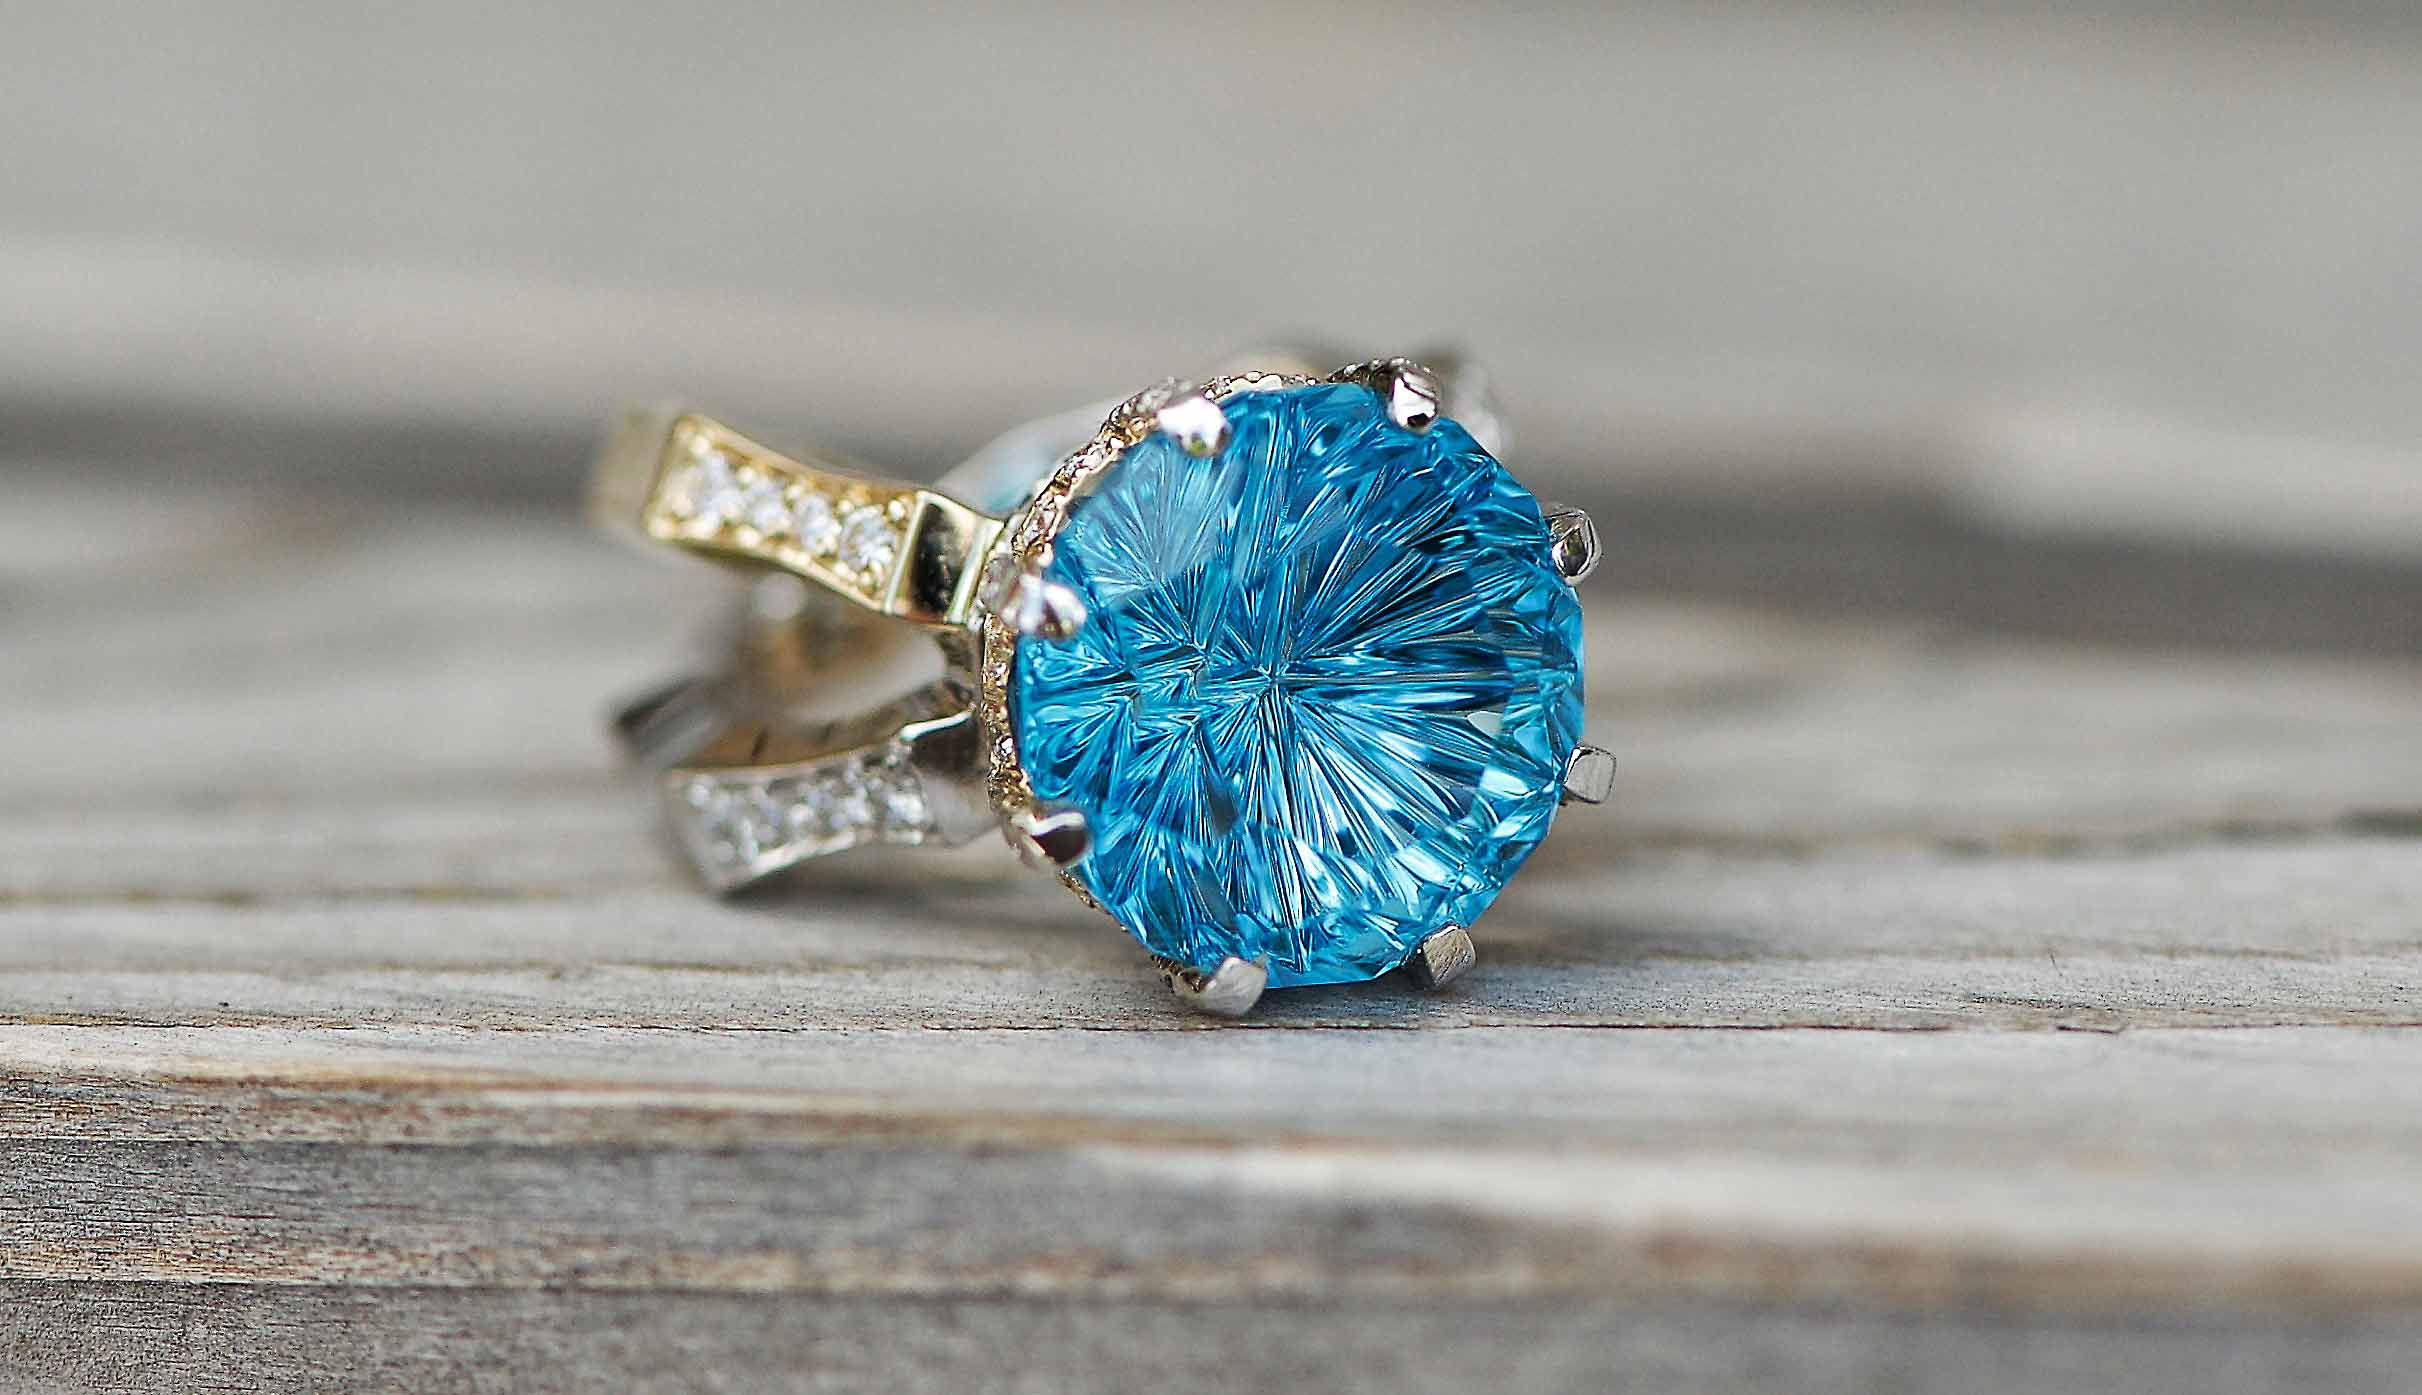 StarBrite™ cut Blue Topaz by John Dyer & Co. in a ring designed by Ryan Masters for Midwest Jewelers and Estate Buyers, made in yellow and white gold and diamonds.